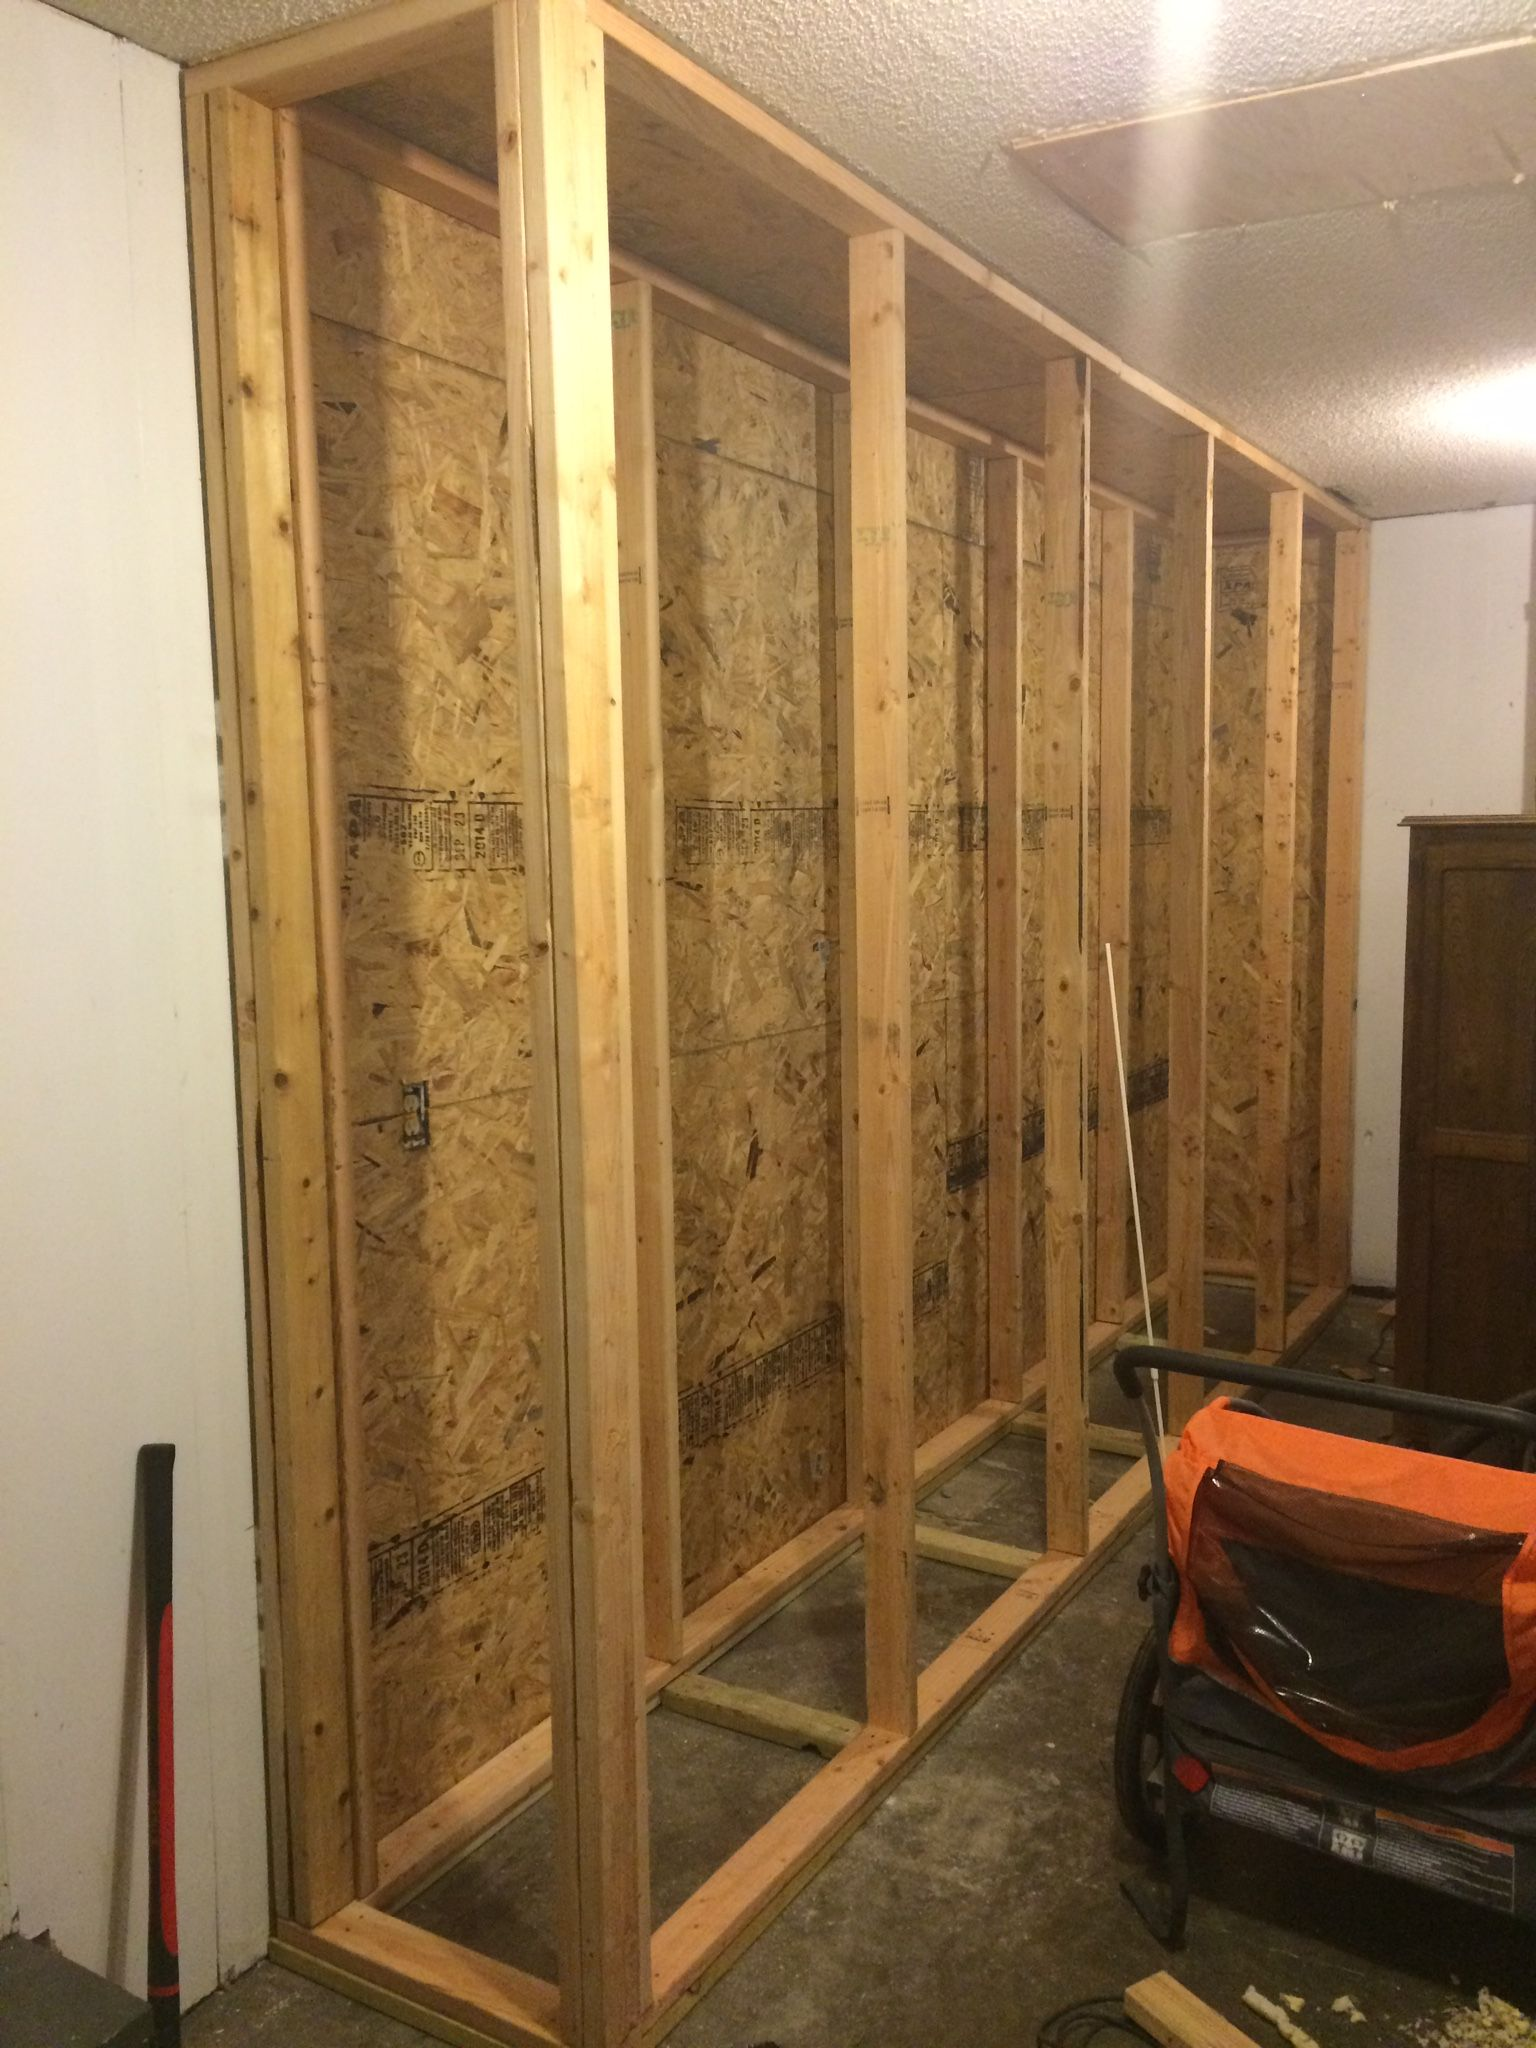 How To Make Your Own Diy Garage Storage Cabinets Great Organization Solution